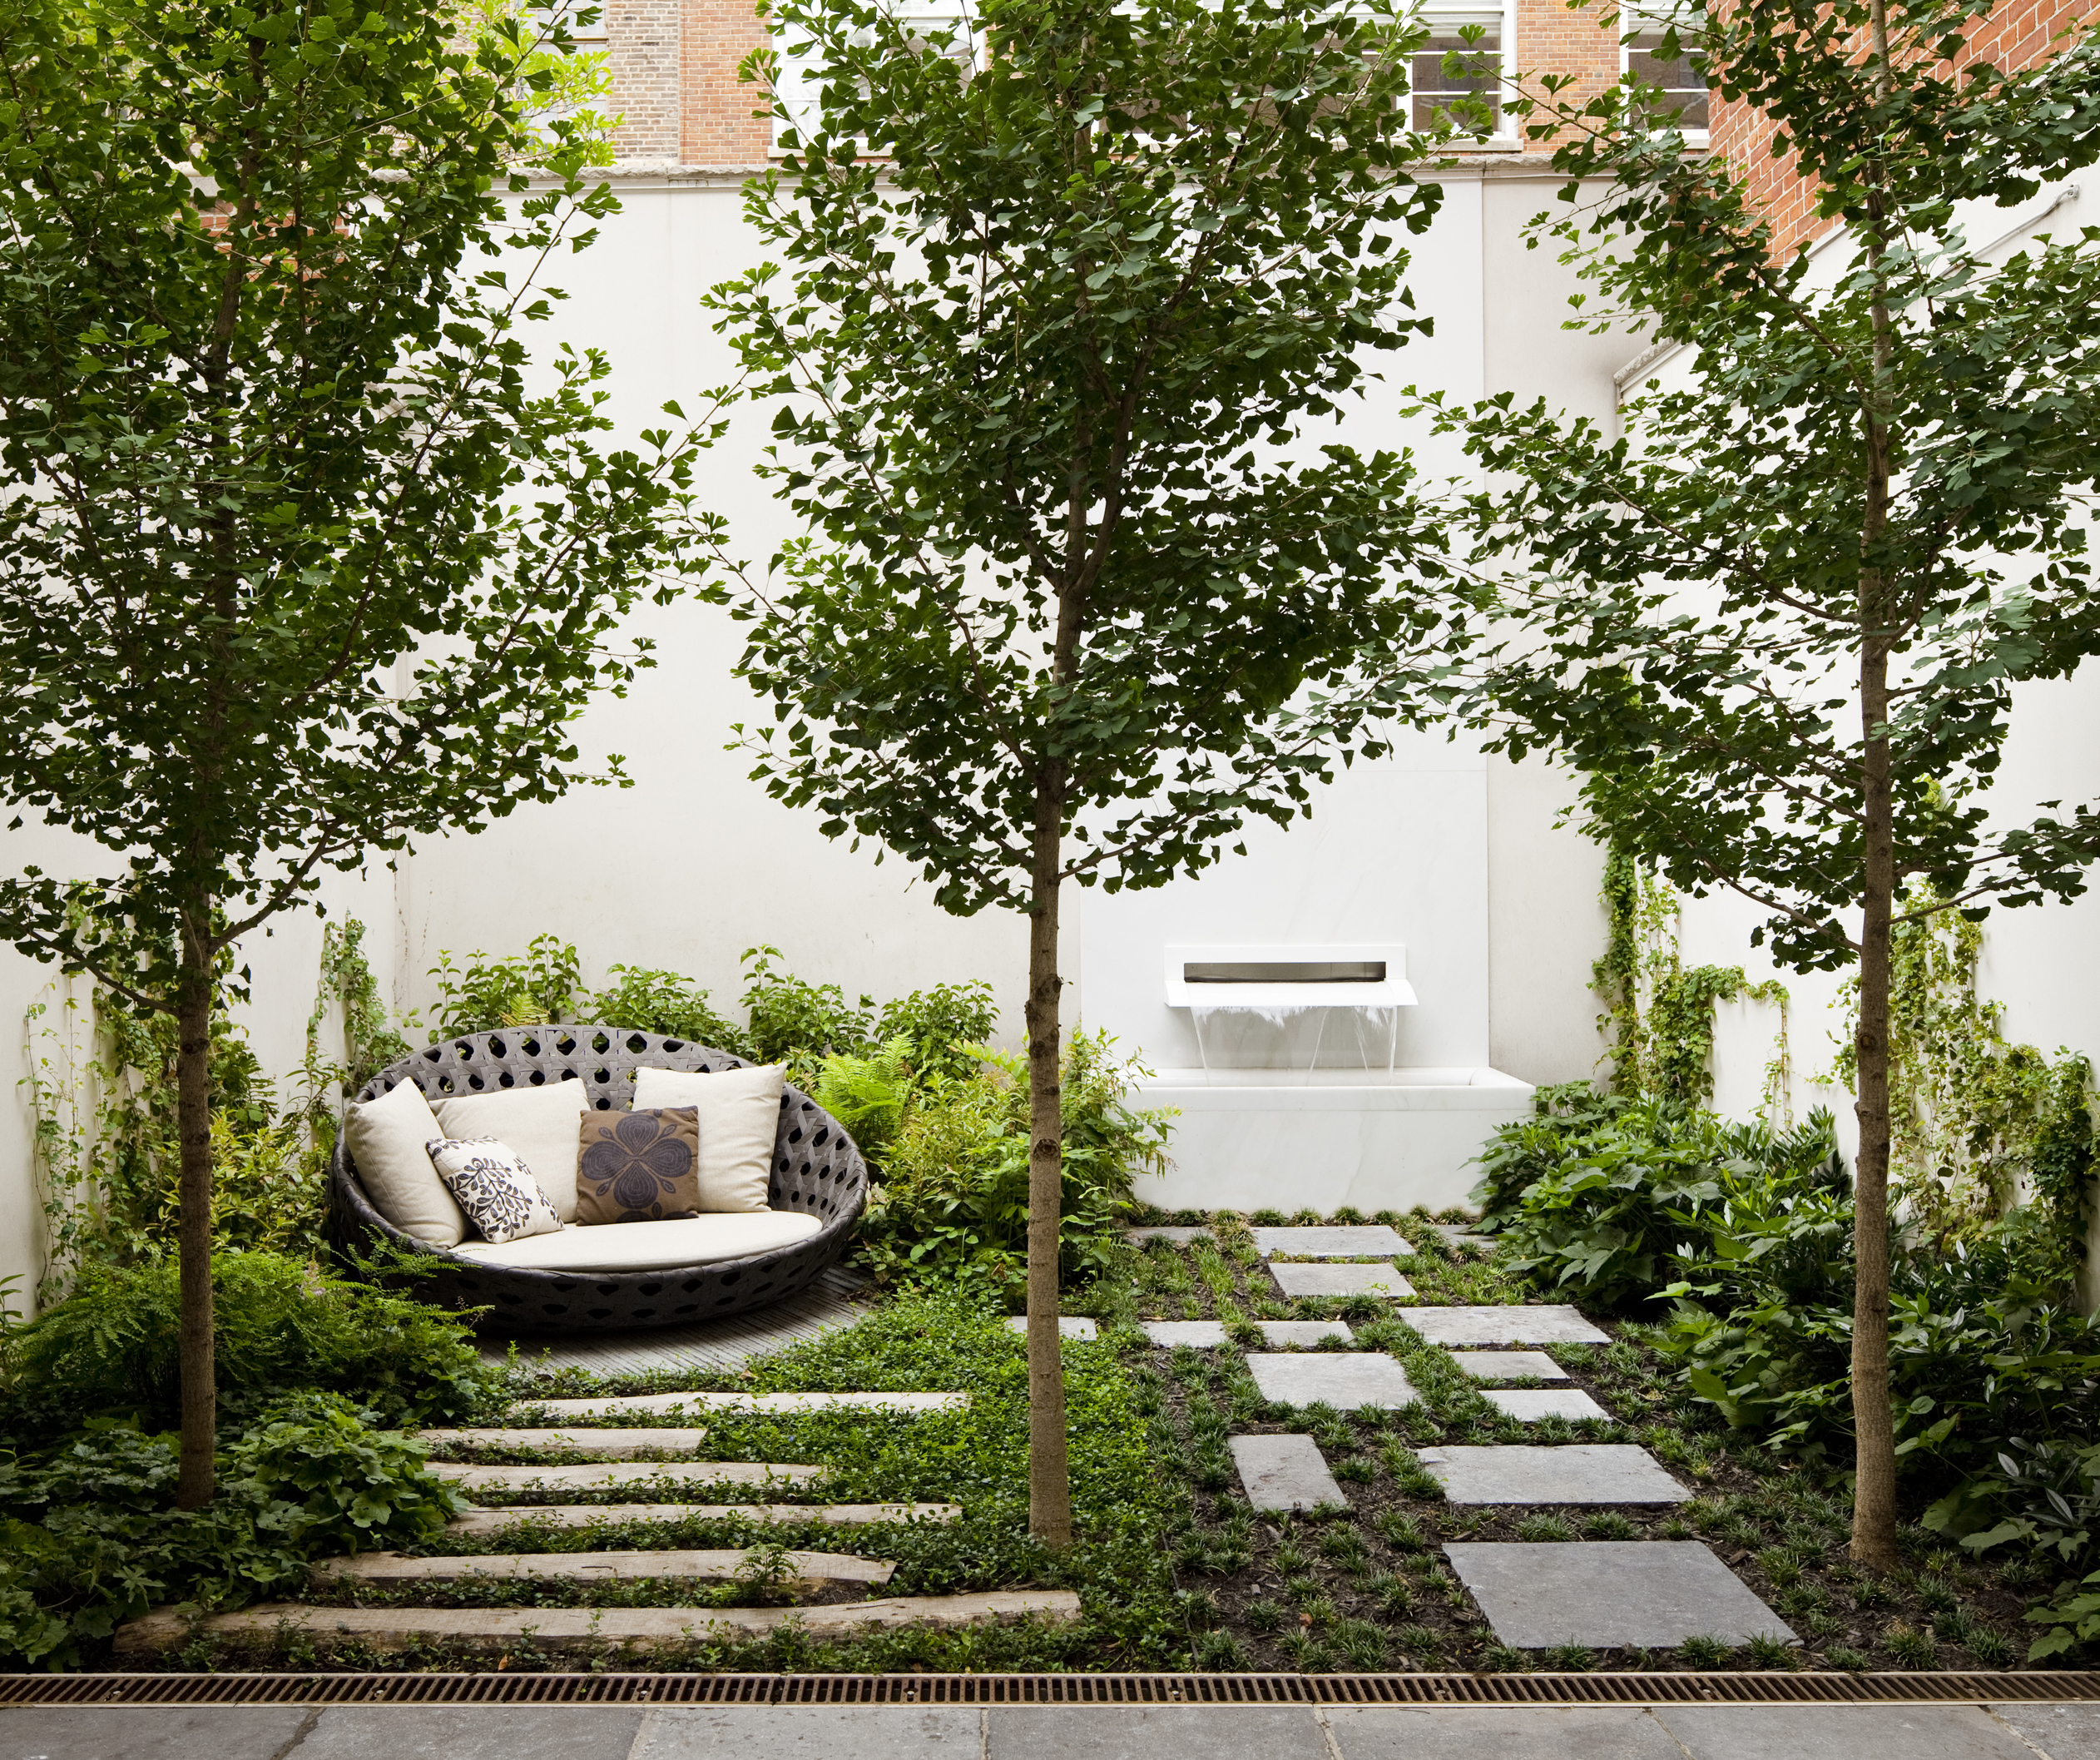 Asla 2011 professional awards carnegie hill house - Decorations de jardin ...